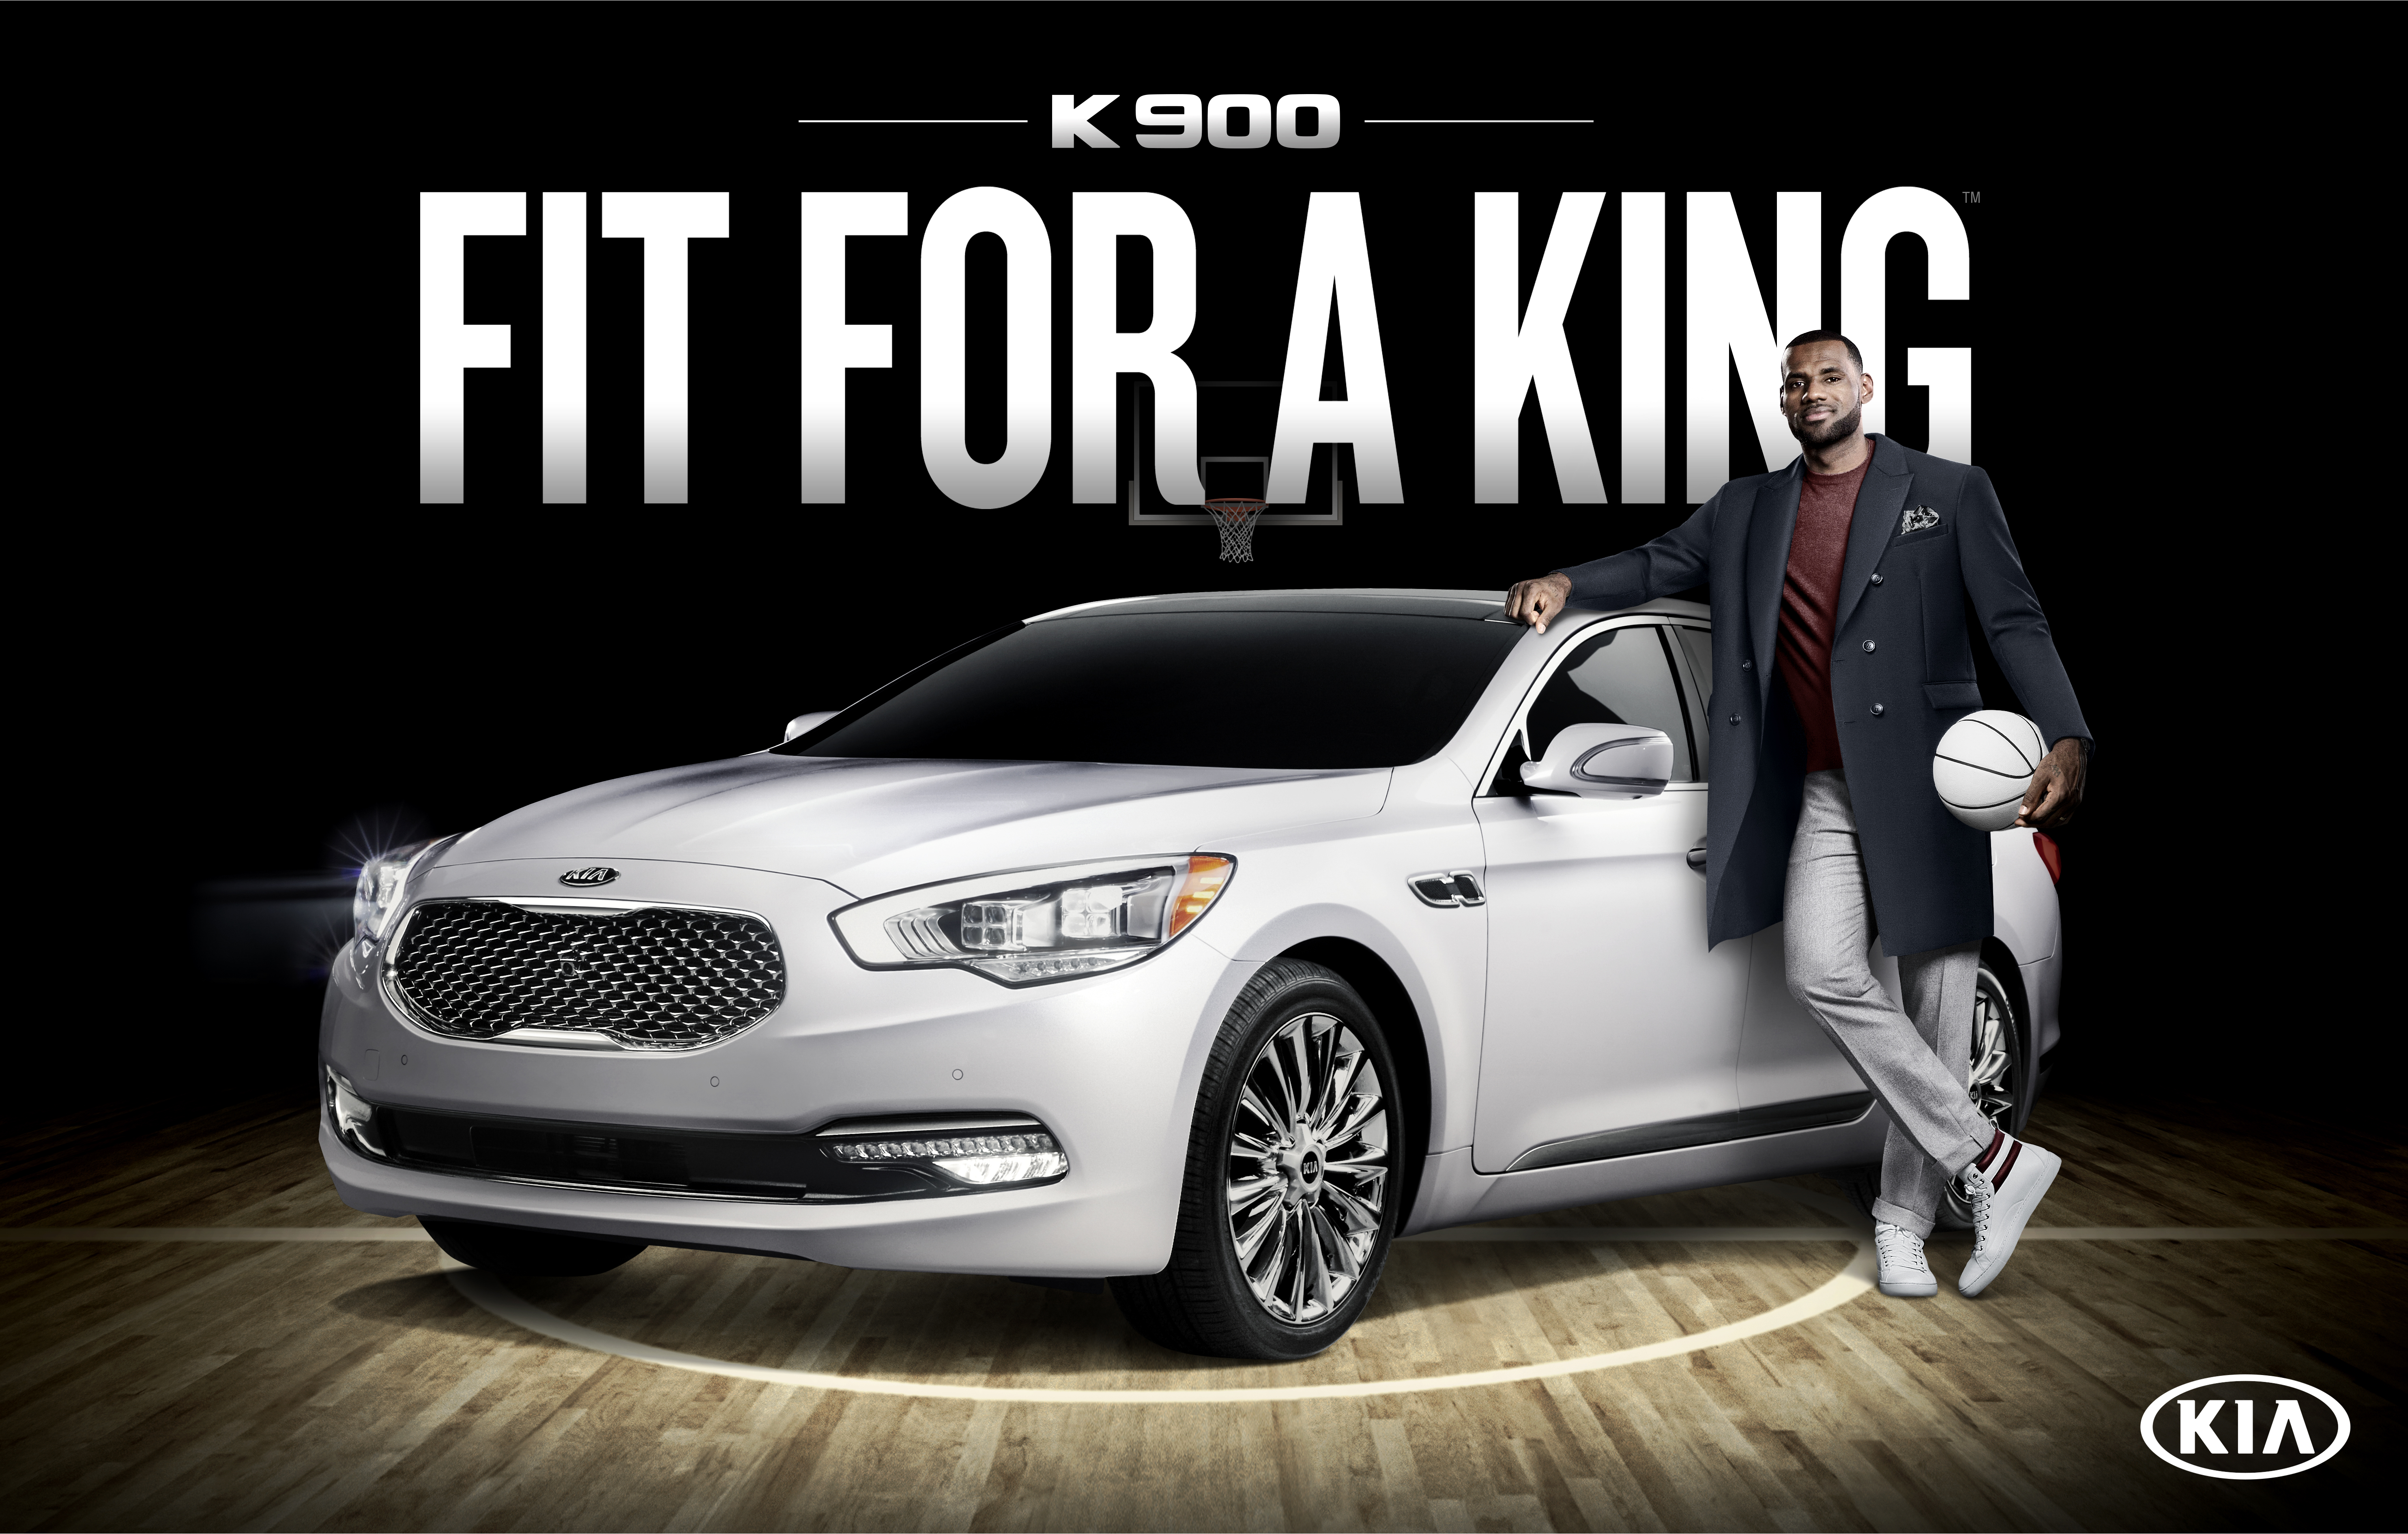 """""""I was a Kia K900 driver and fan before we decided to become partners, so I'm really excited to be Kia's first-ever luxury ambassador,"""" said LeBron James. (image credit: Kia Motors America)"""